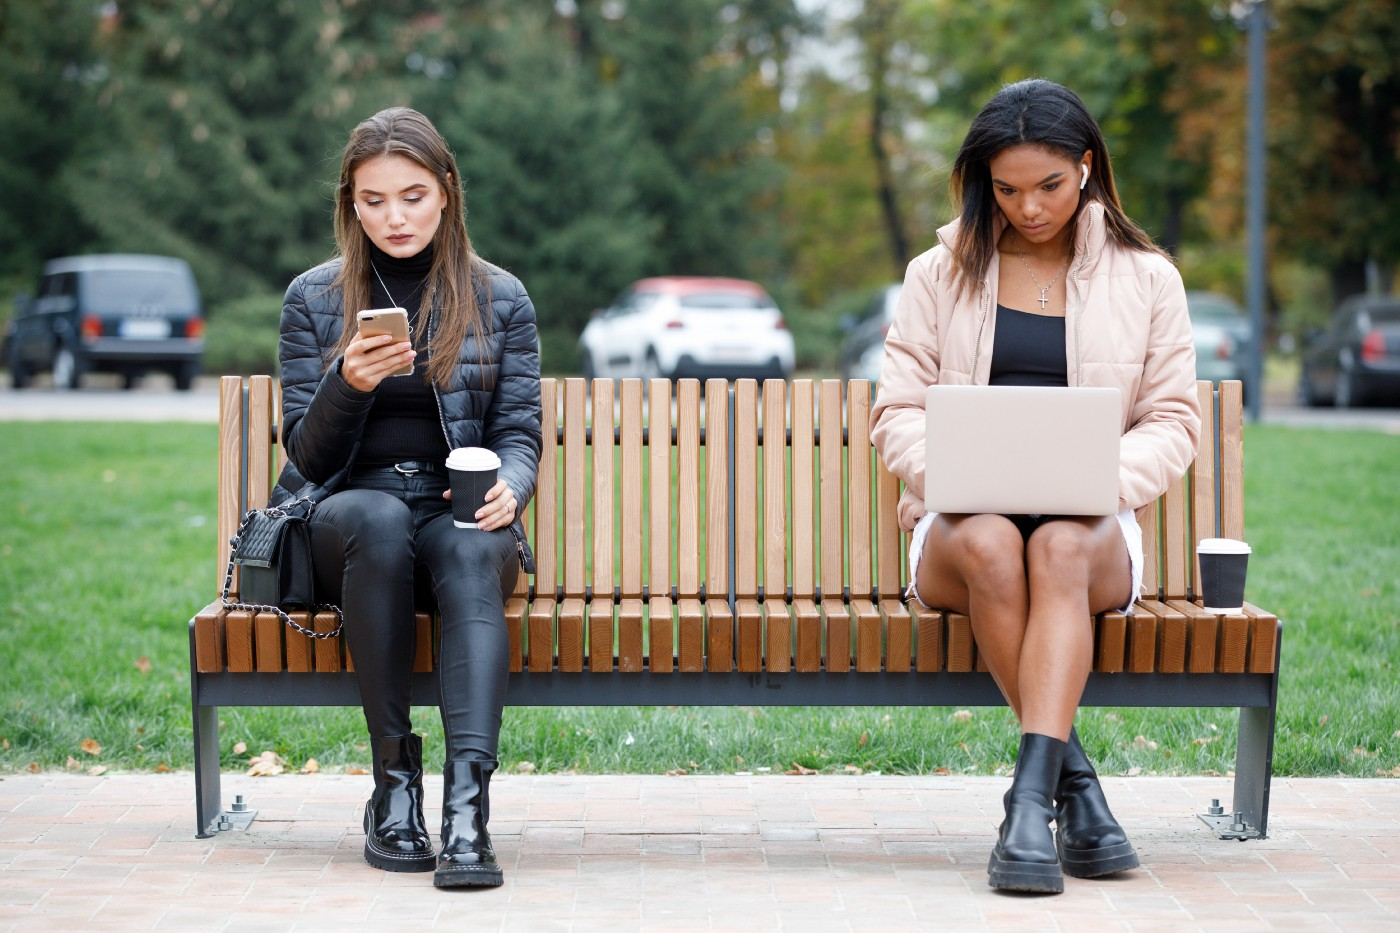 Two women sitting on a park bench paying no attention to each other